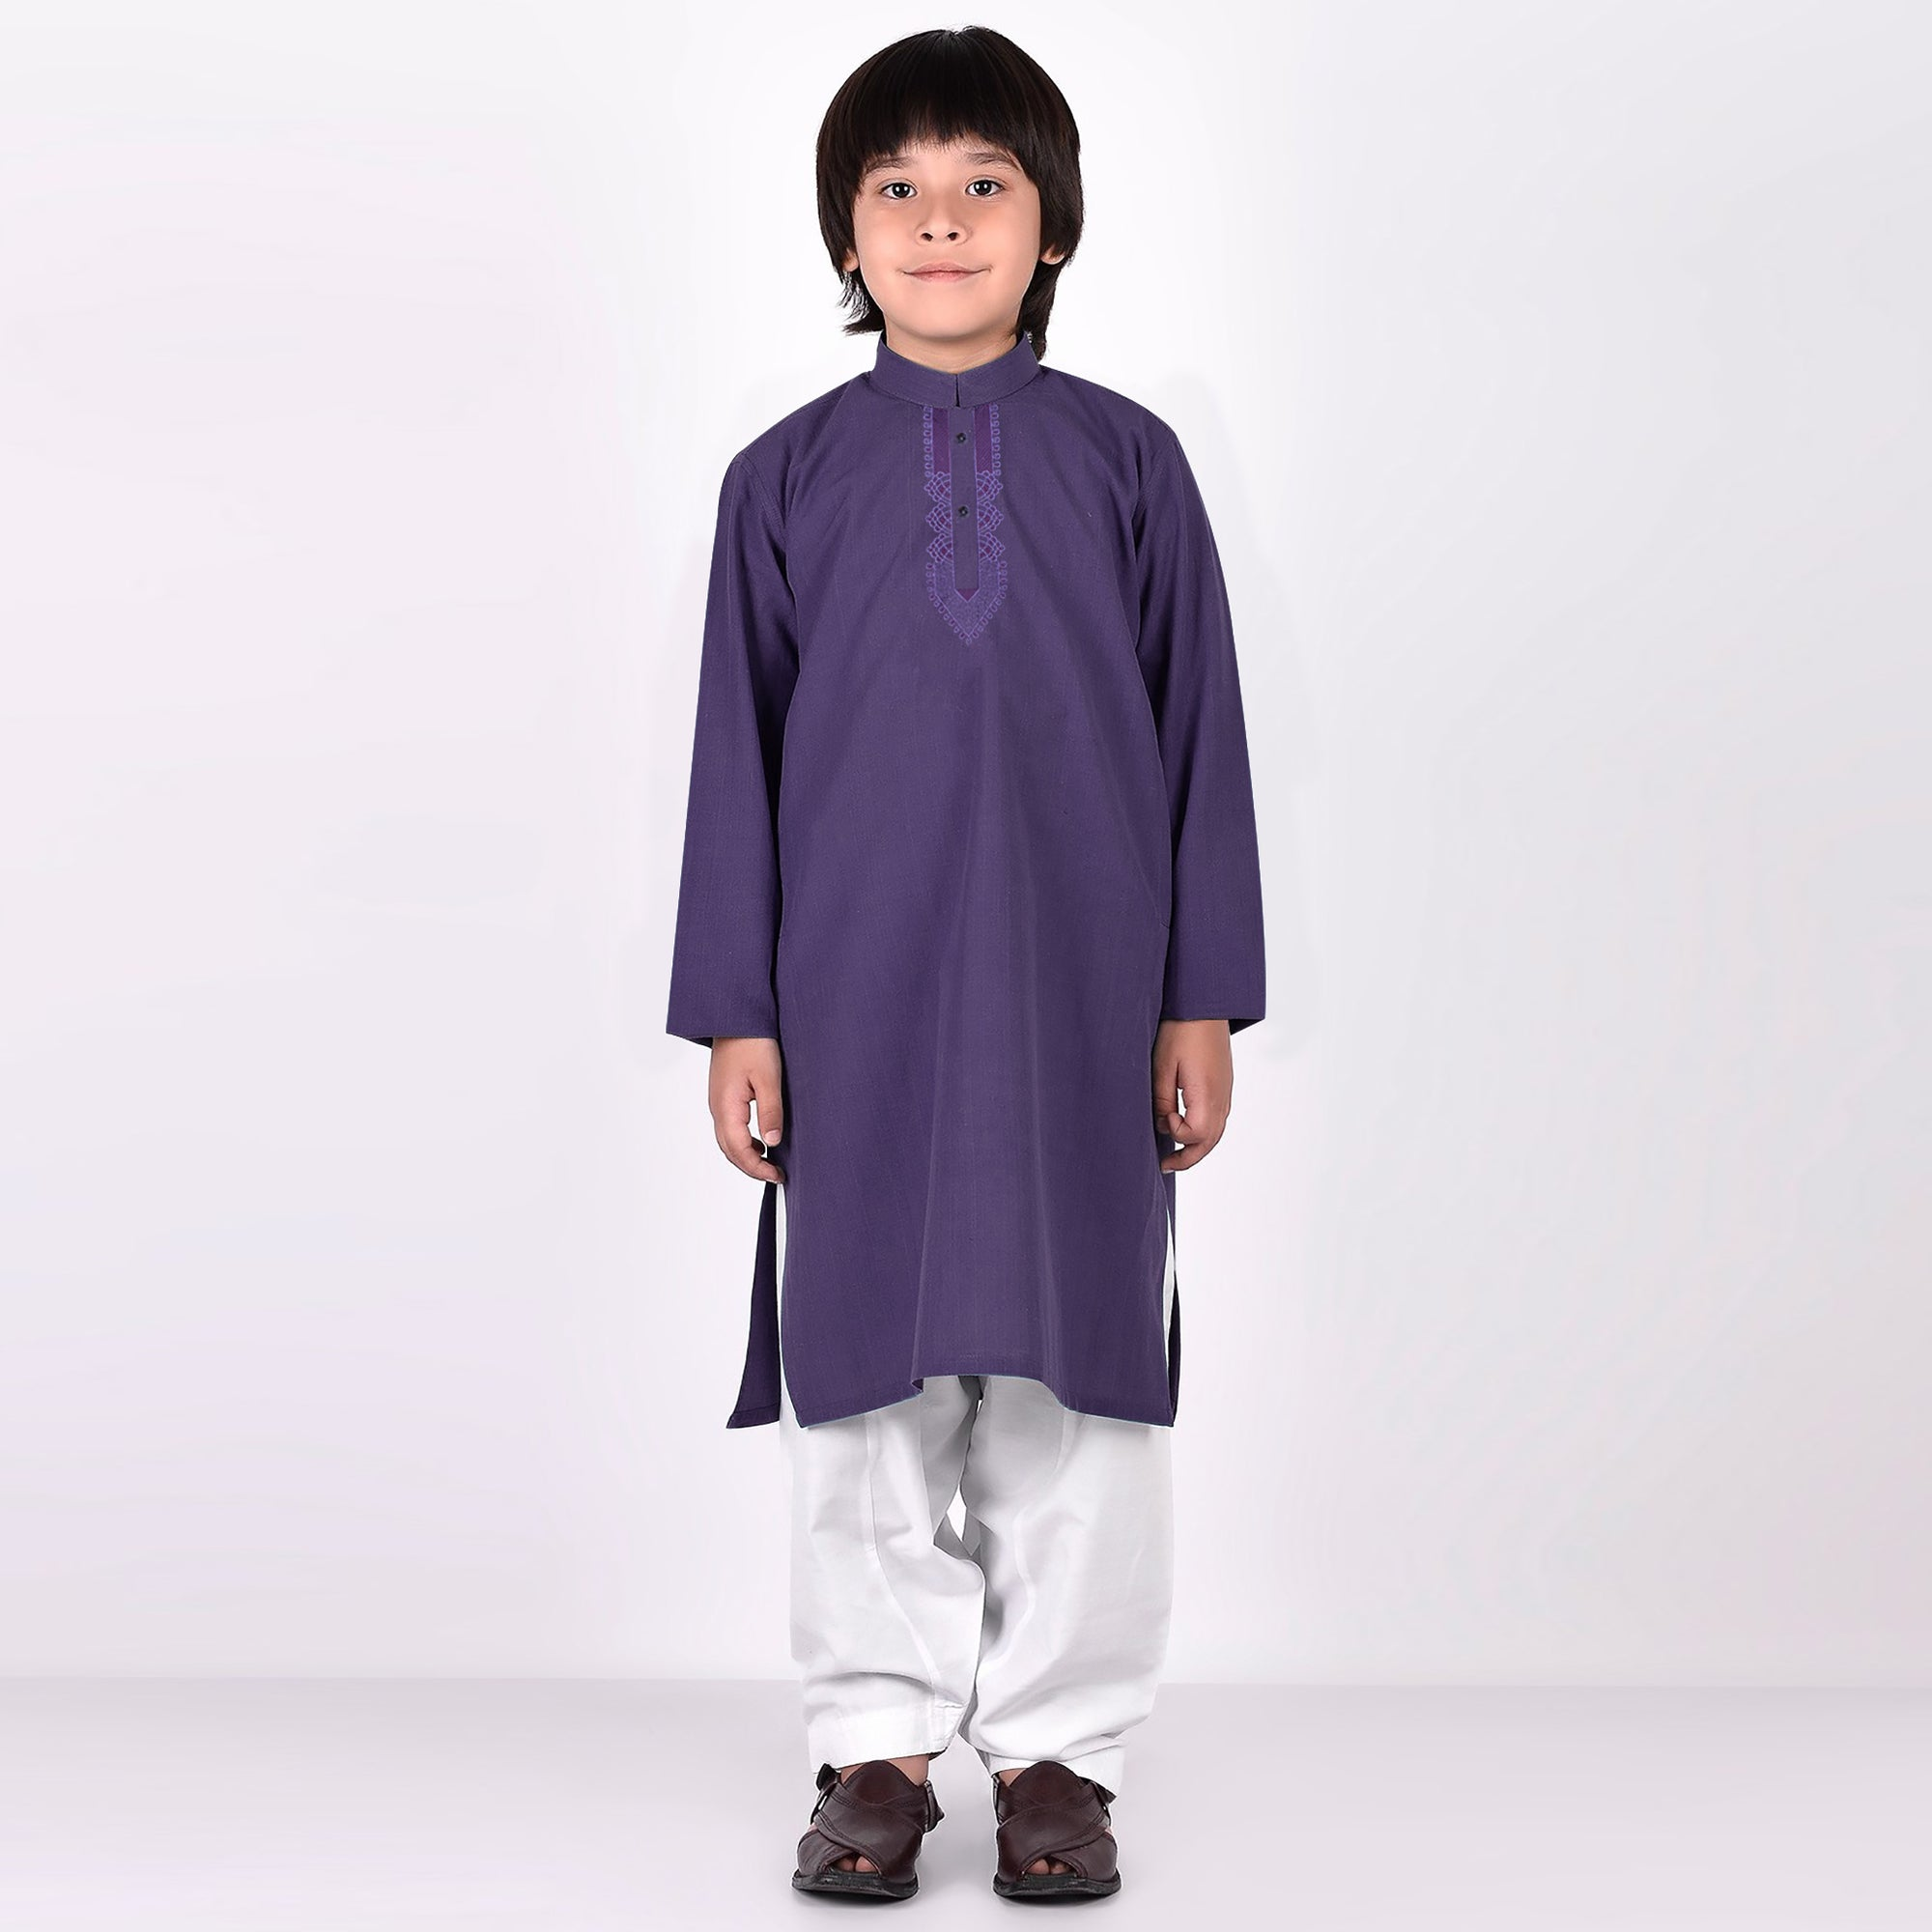 Premium Kurta & Shalwar For Boys-Purple with White-BE6923